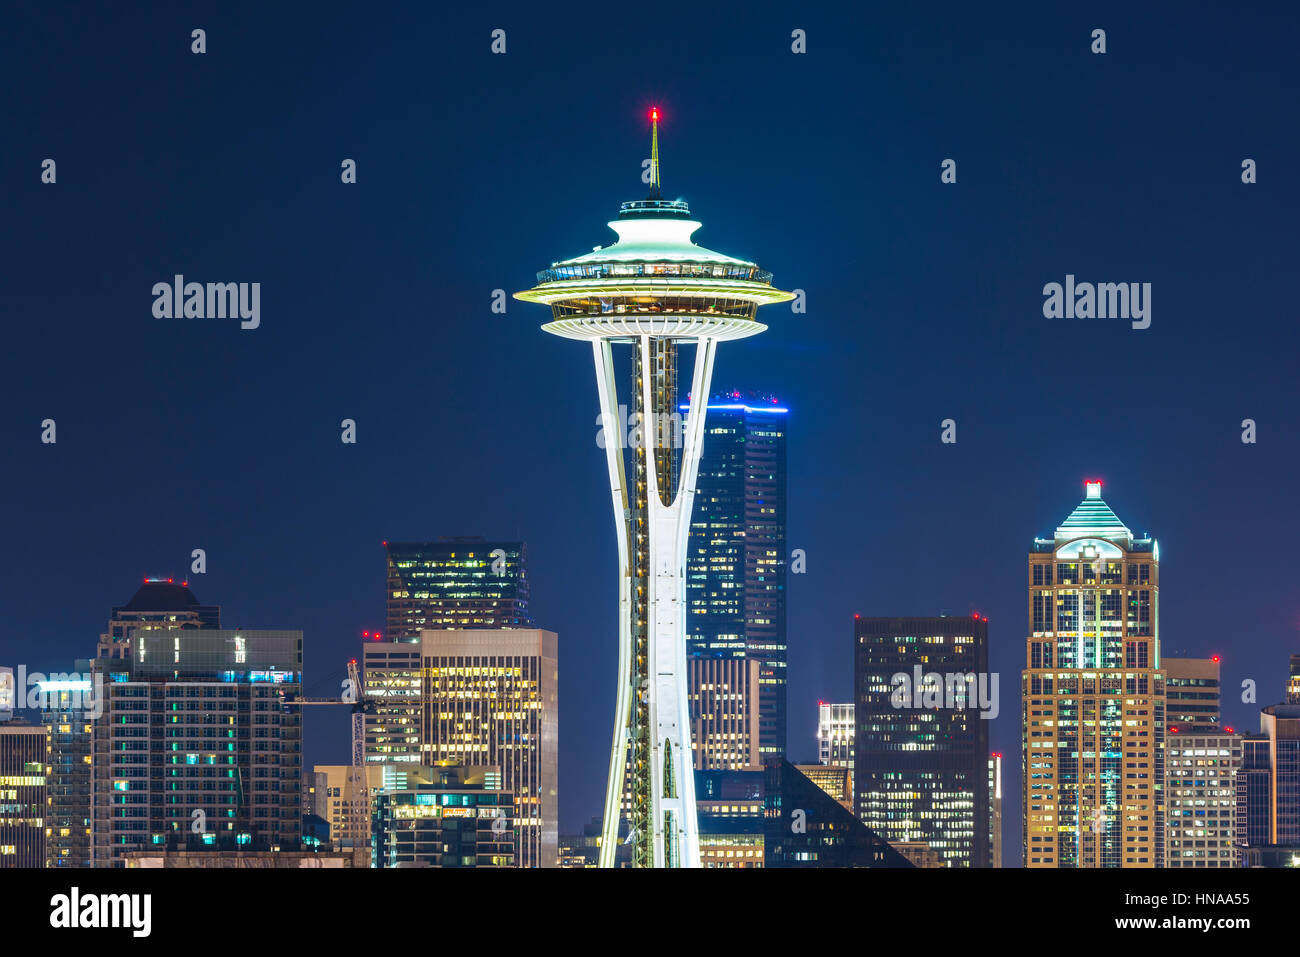 Seattle,Washington,usa.2015/02/22: beautiful space needle at night. - Stock Image